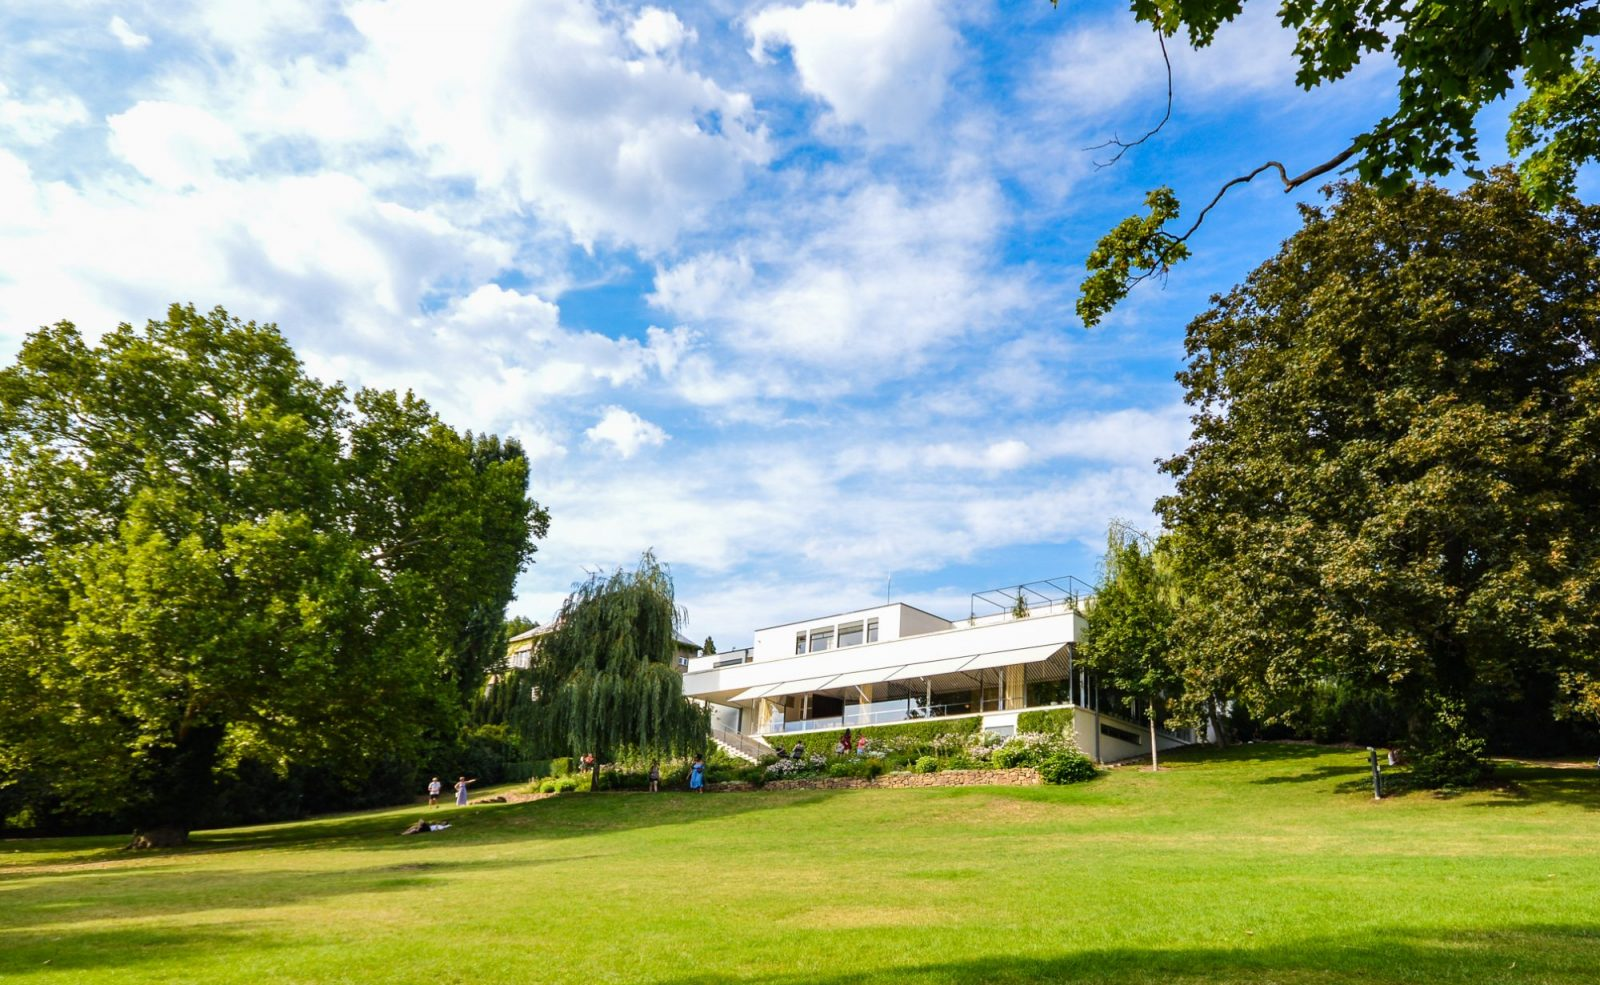 UNESCO Villa Tugendhat in Brno